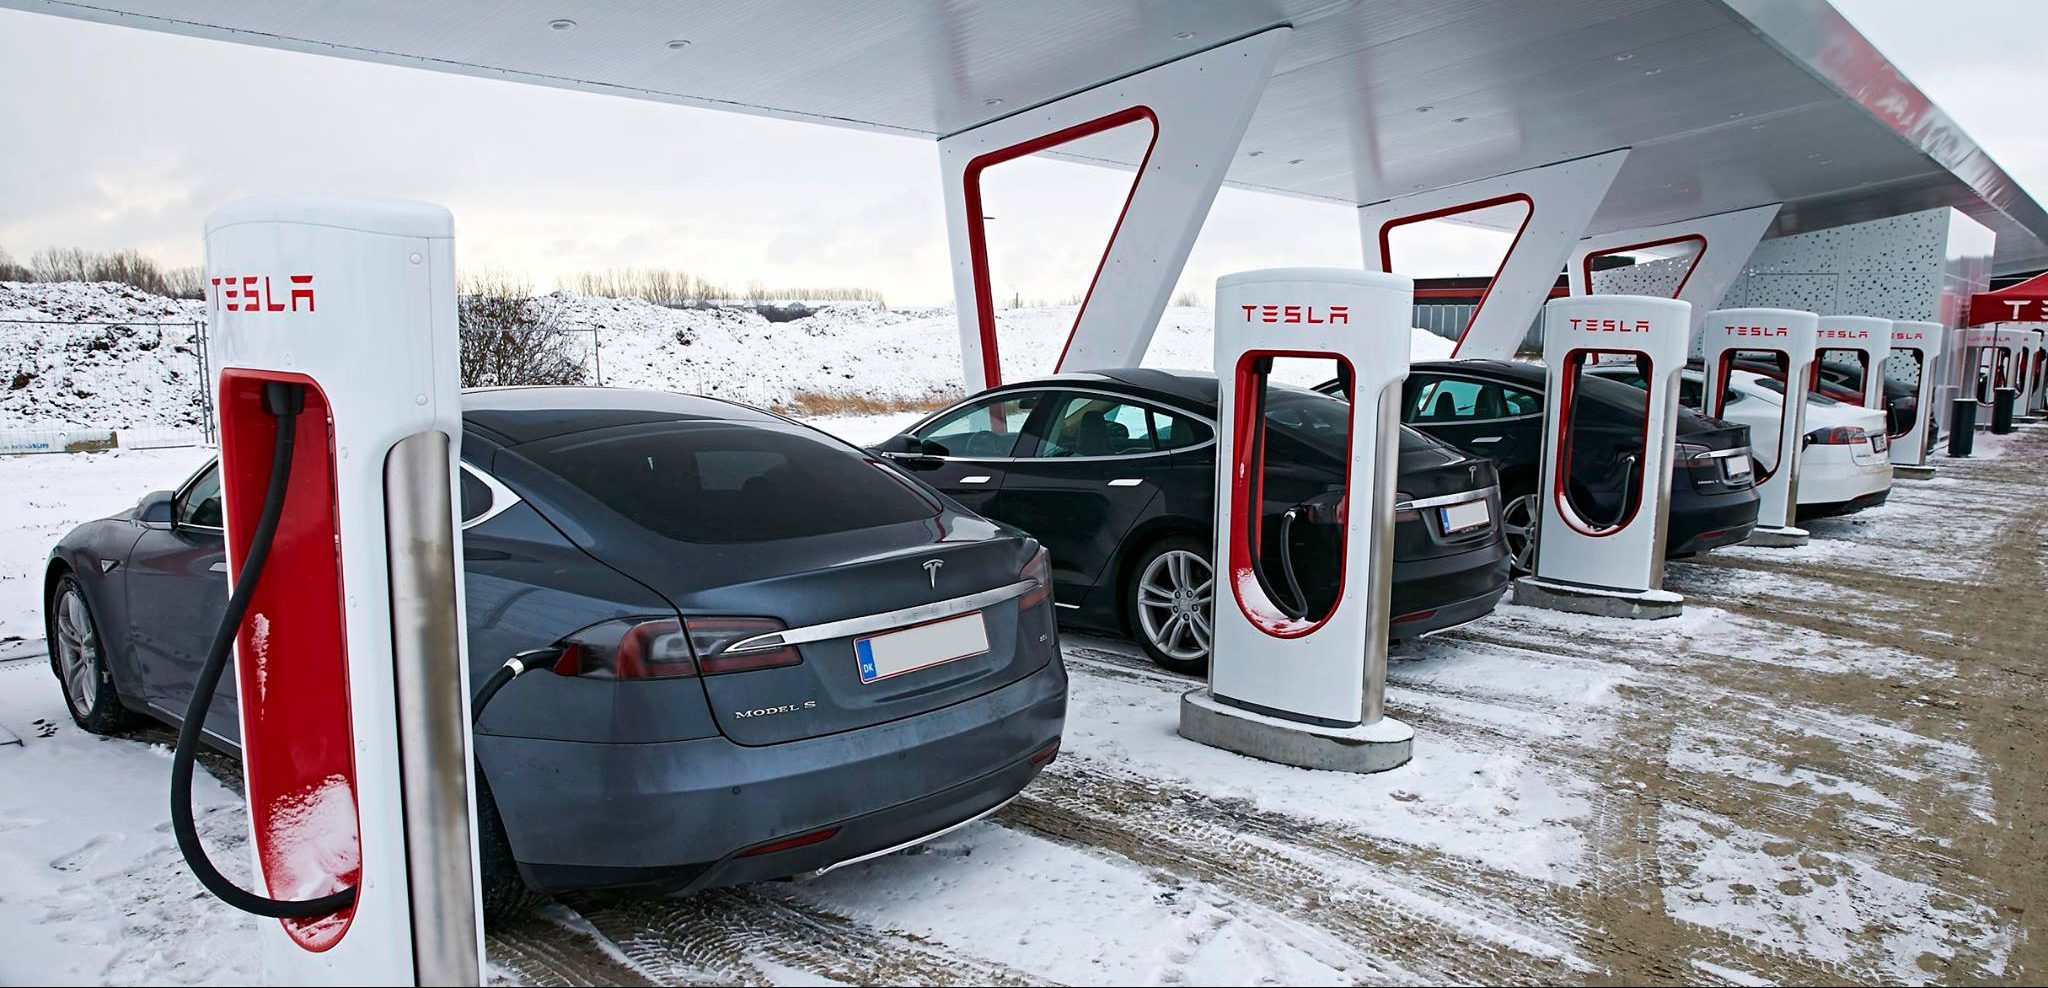 Tesla_SuperchargingStation_balkans